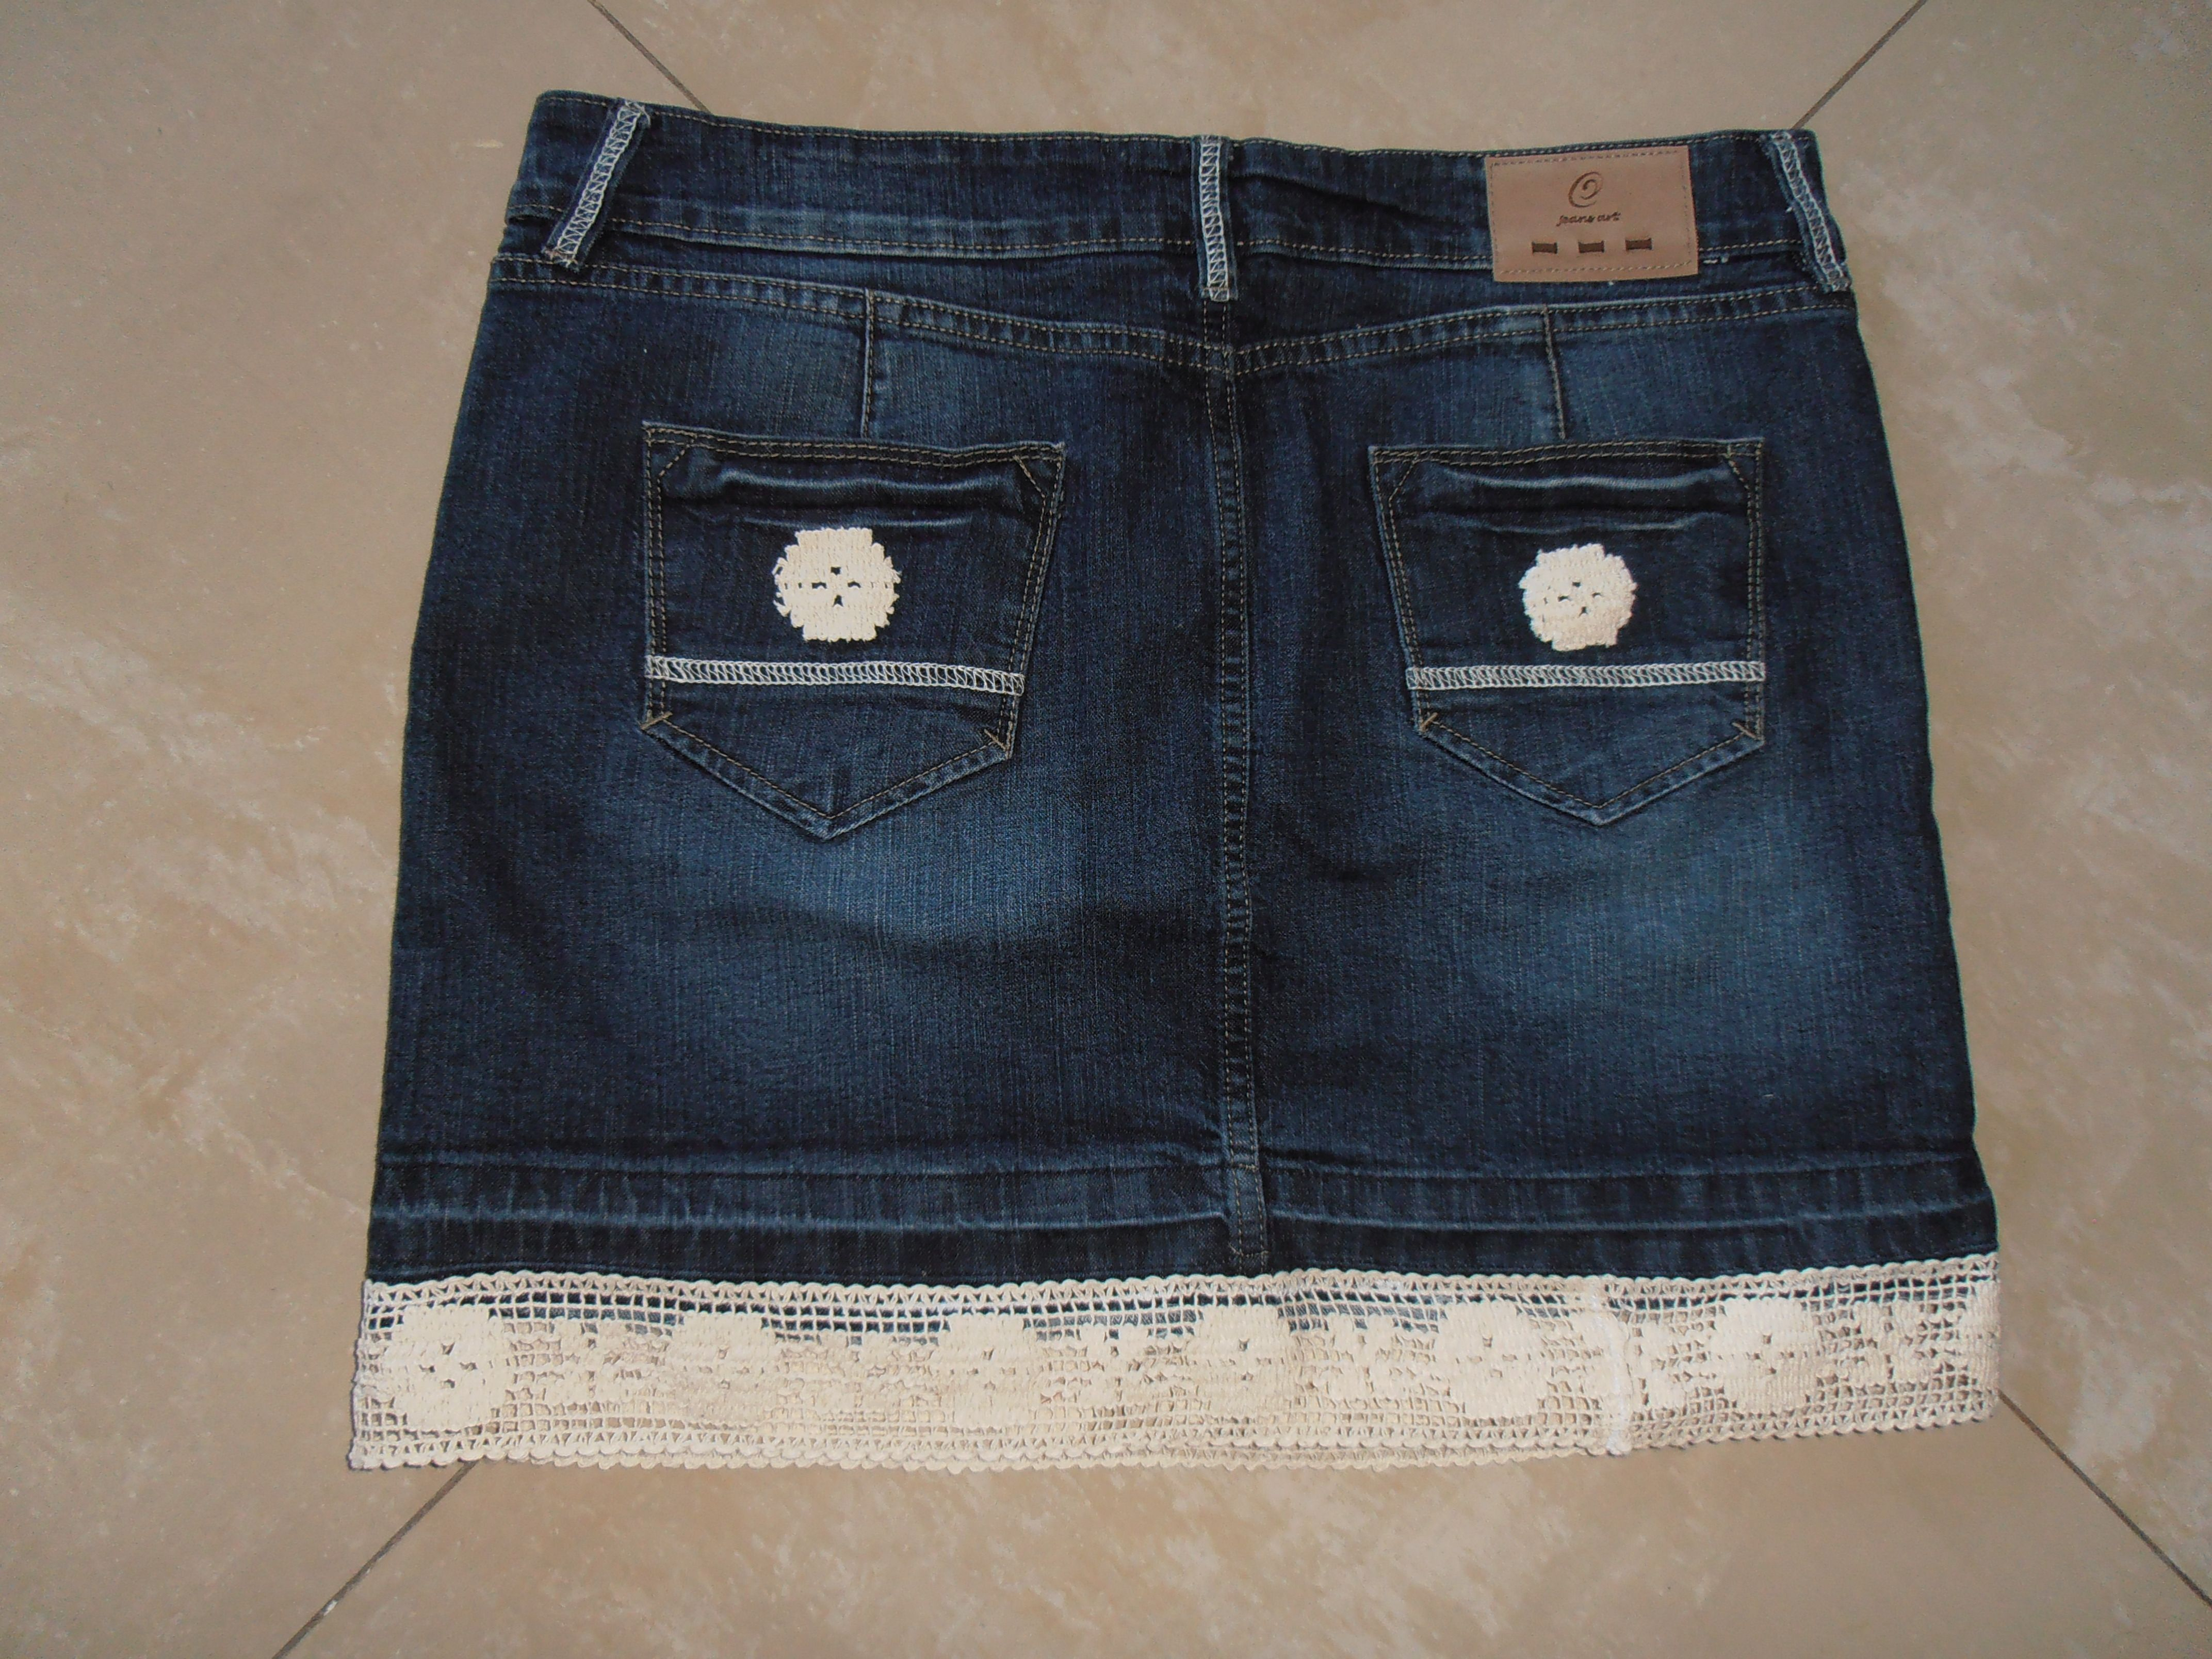 A new jean skirt with the perfect length!